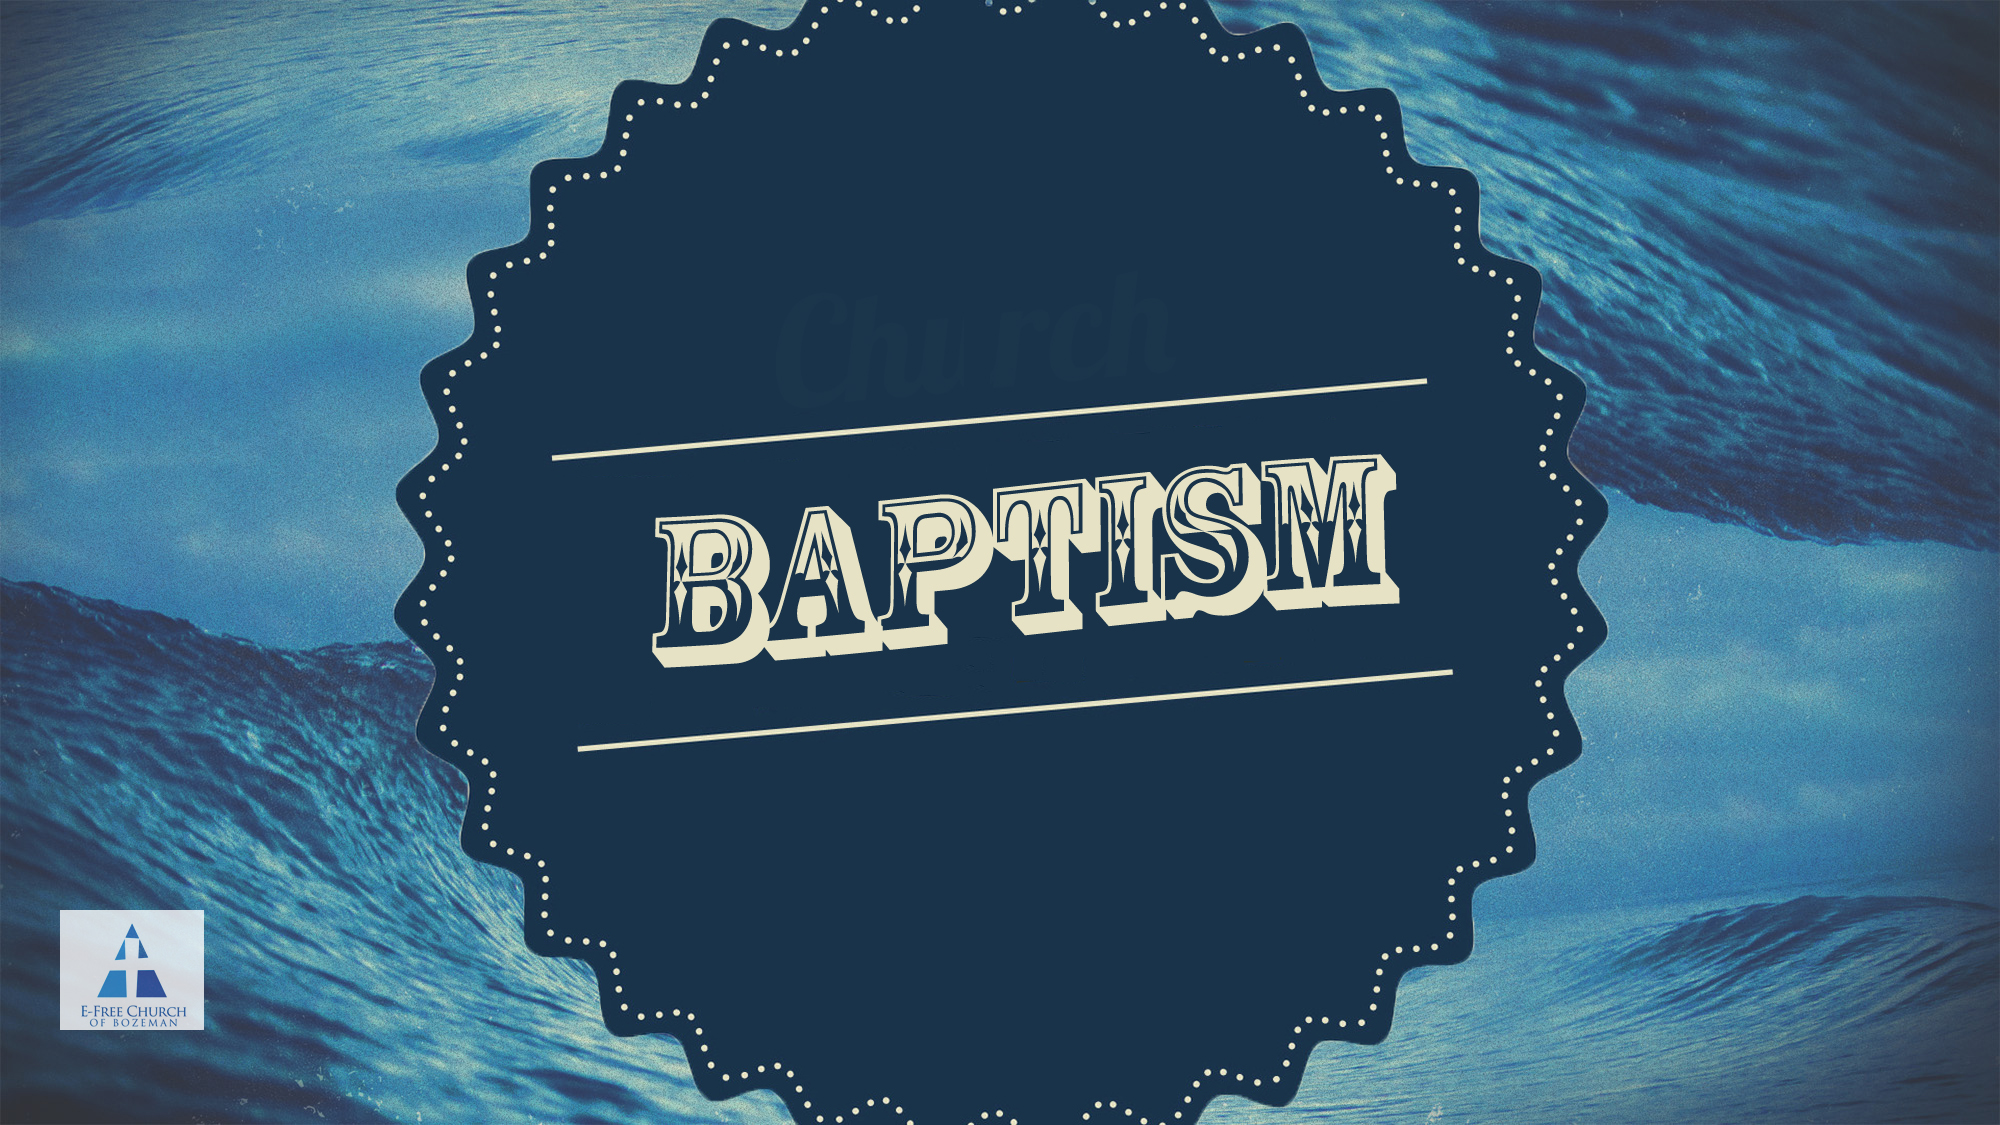 Baptism – What do we celebrate? (8/20/17)